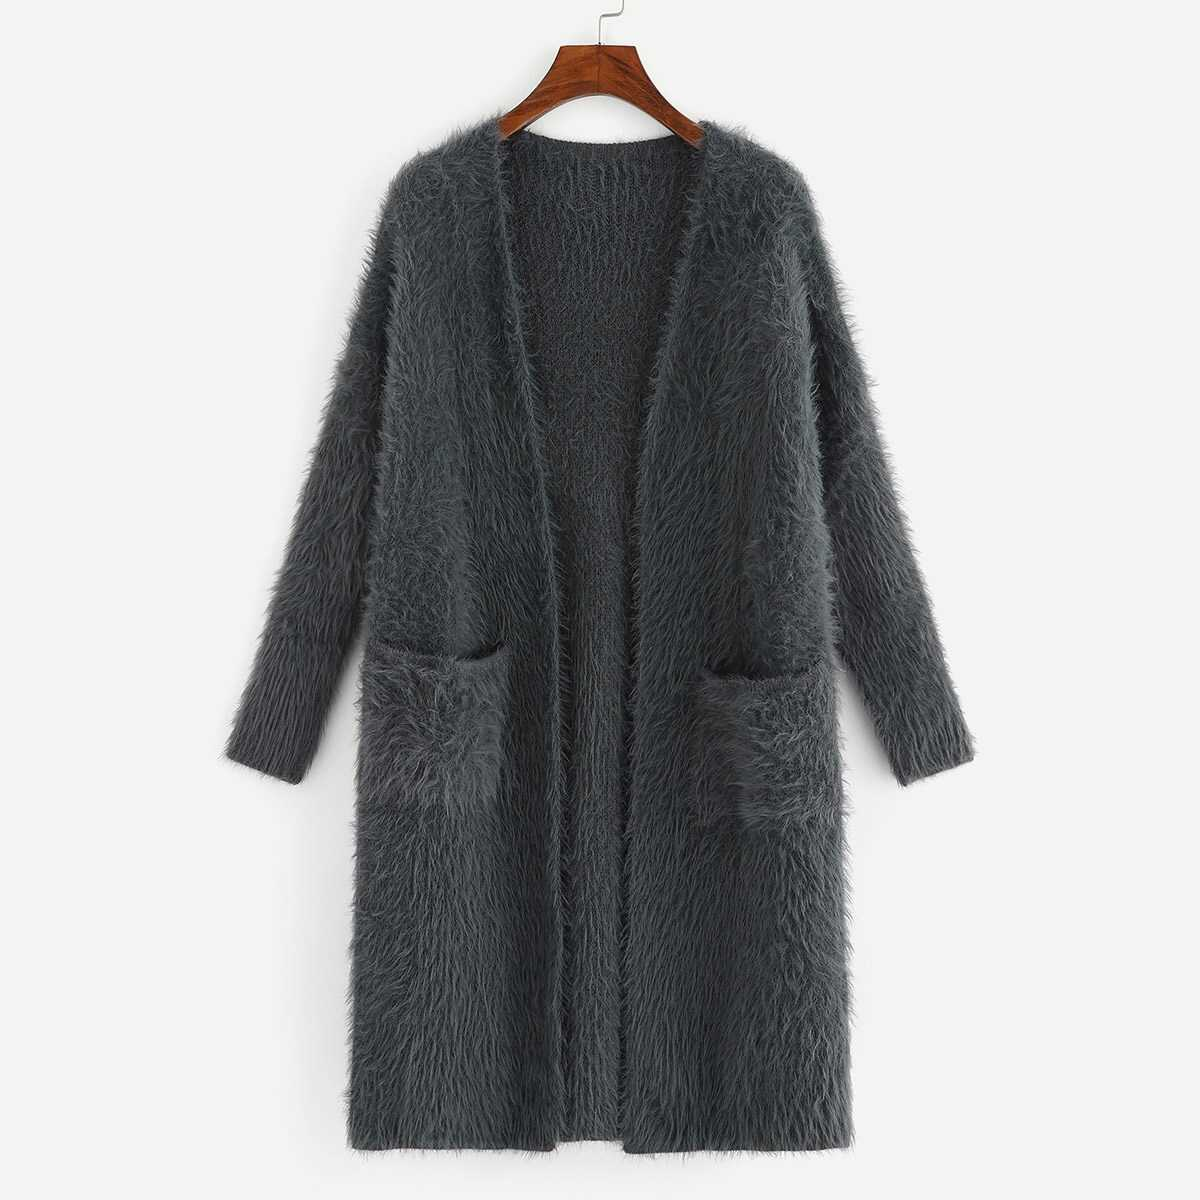 Pocket Patched Open Front Fuzzy Cardigan - Shein - GOOFASH